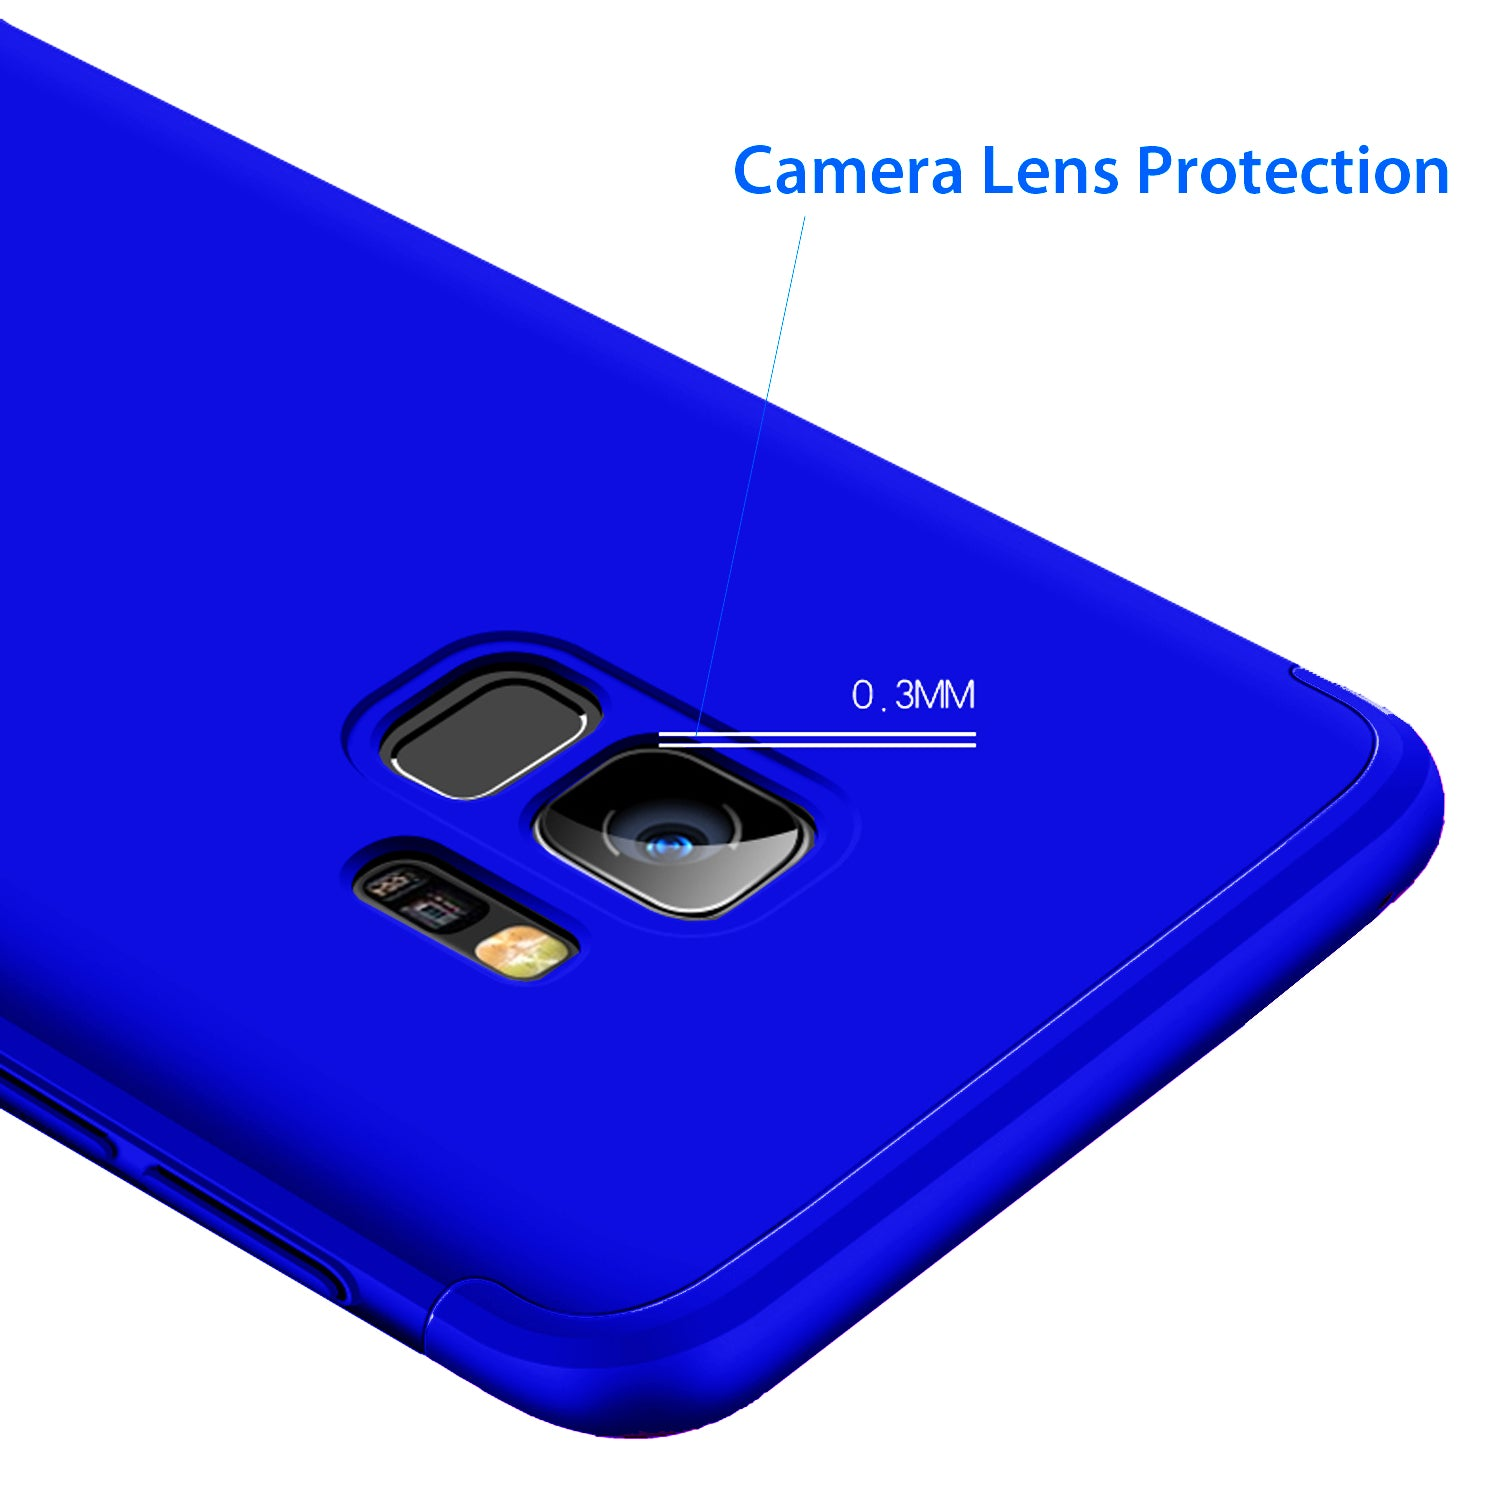 3 in 1 - 360° Full Protection Body Case Cover for Samsung Galaxy S9 - Blue - Mobizang